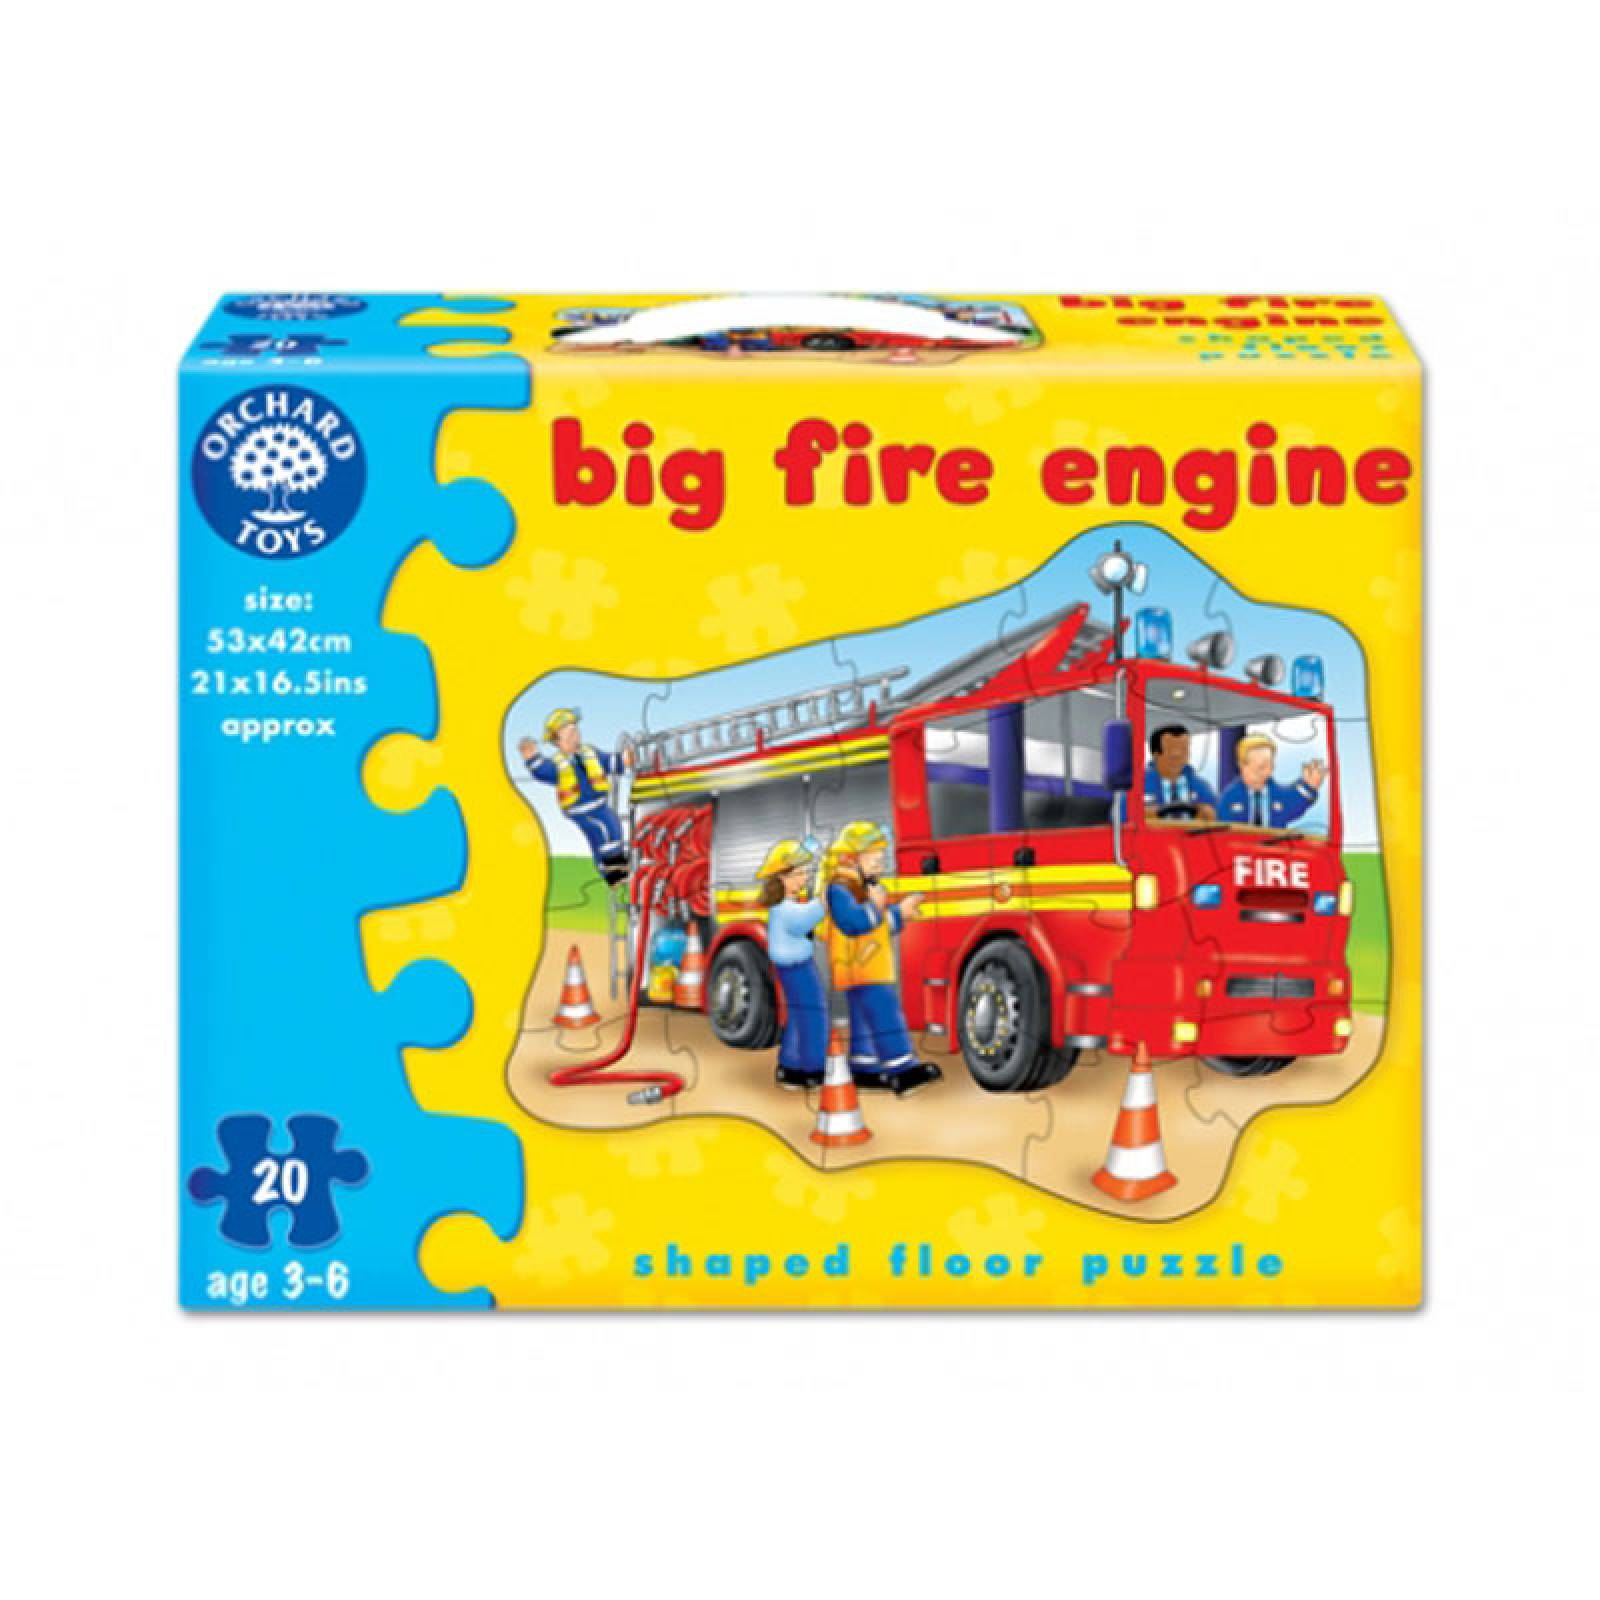 Big Fire Engine Puzzle Jigsaw By Orchard Toys 3-6yrs thumbnails